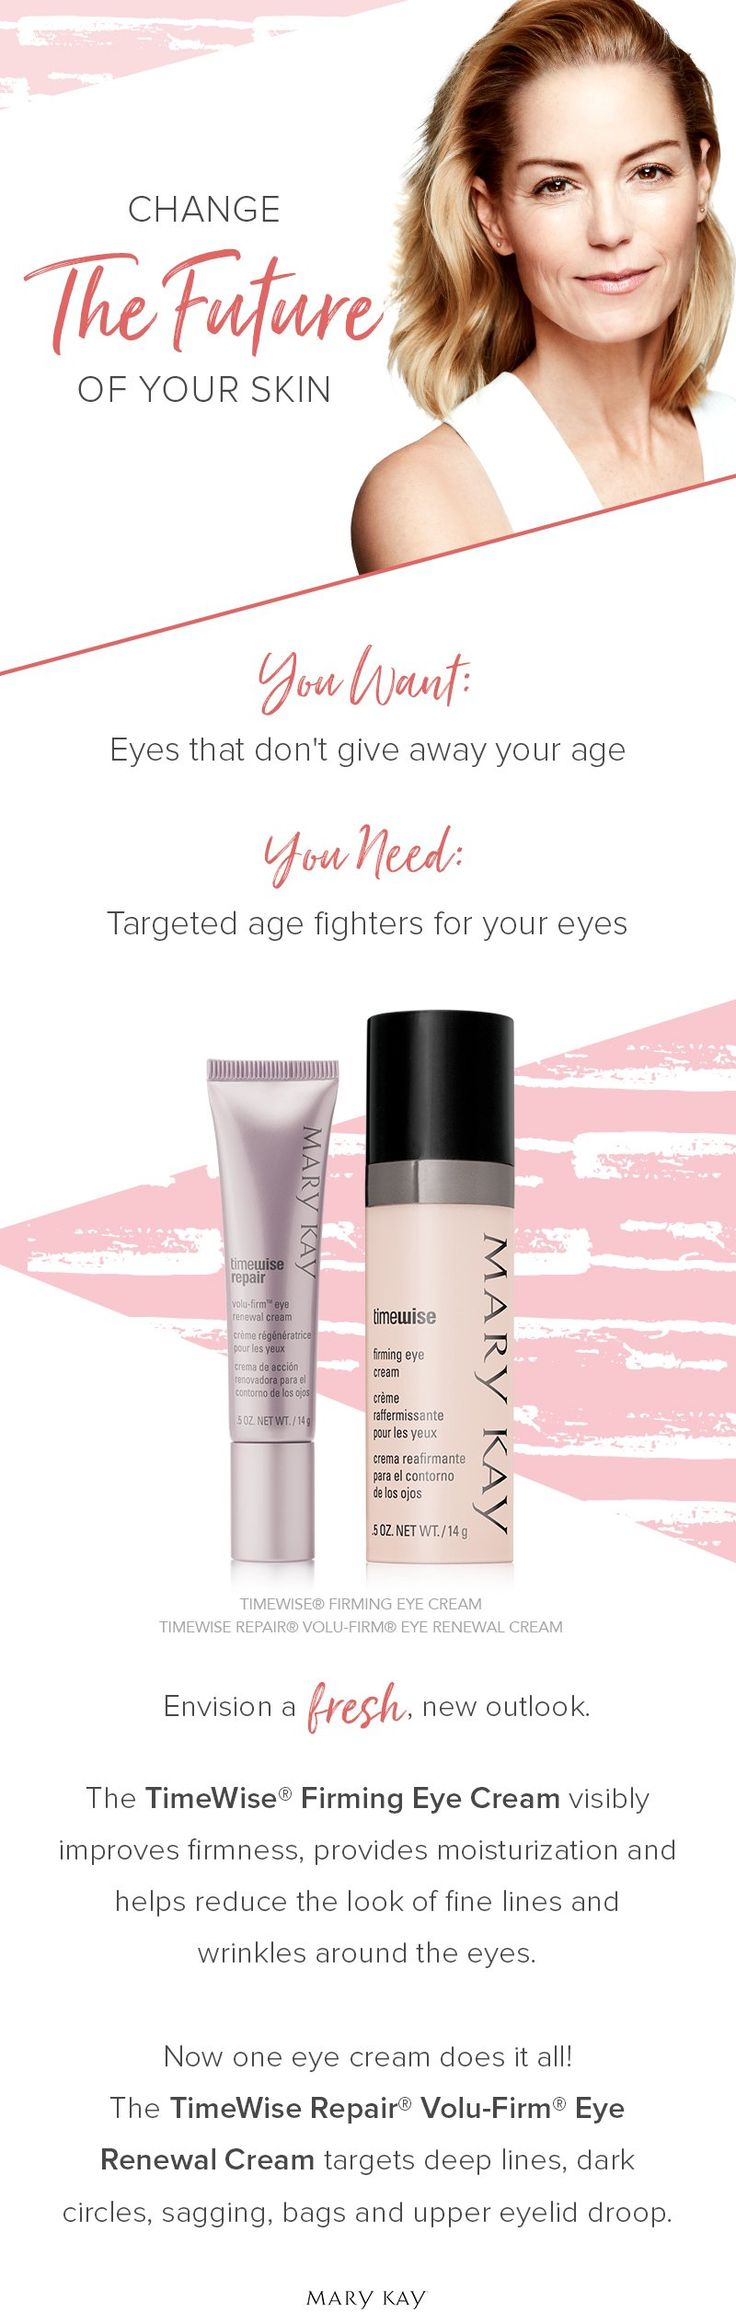 Targeted age-fighters for your eyes! Rich in botanical extracts and brightening agents, TimeWise® Firming Eye Cream minimizes the appearance of fine lines and wrinkles. | Mary Kay